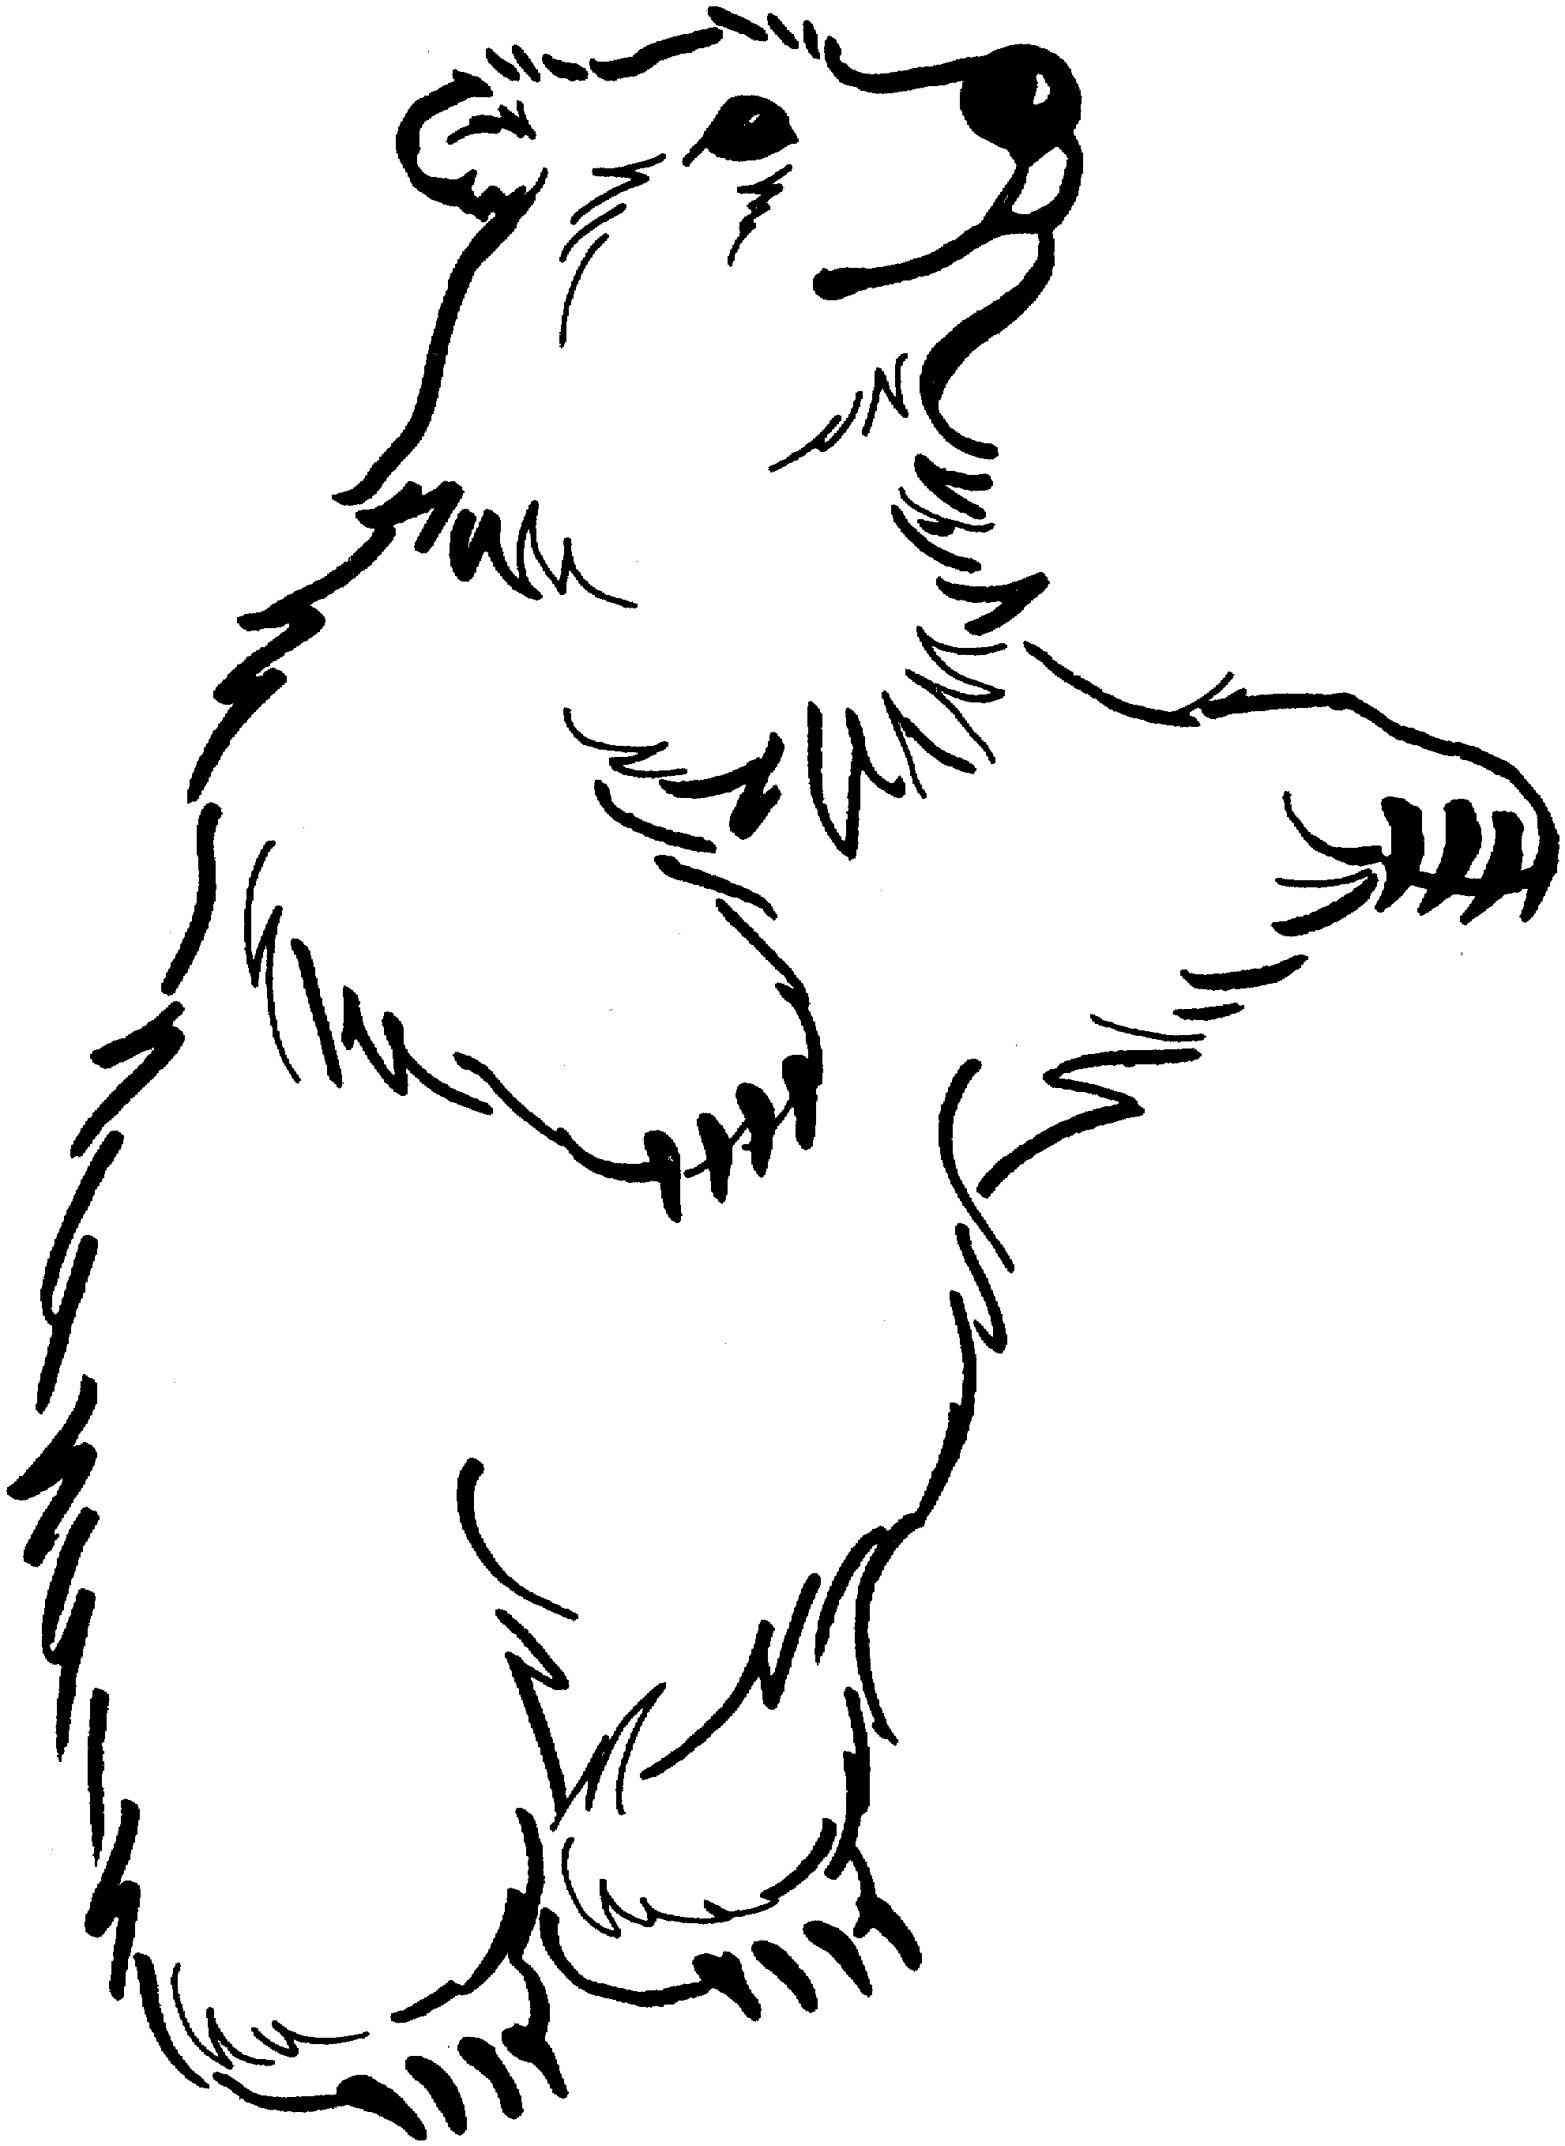 Awesome bear gallery digital. Bears clipart black and white